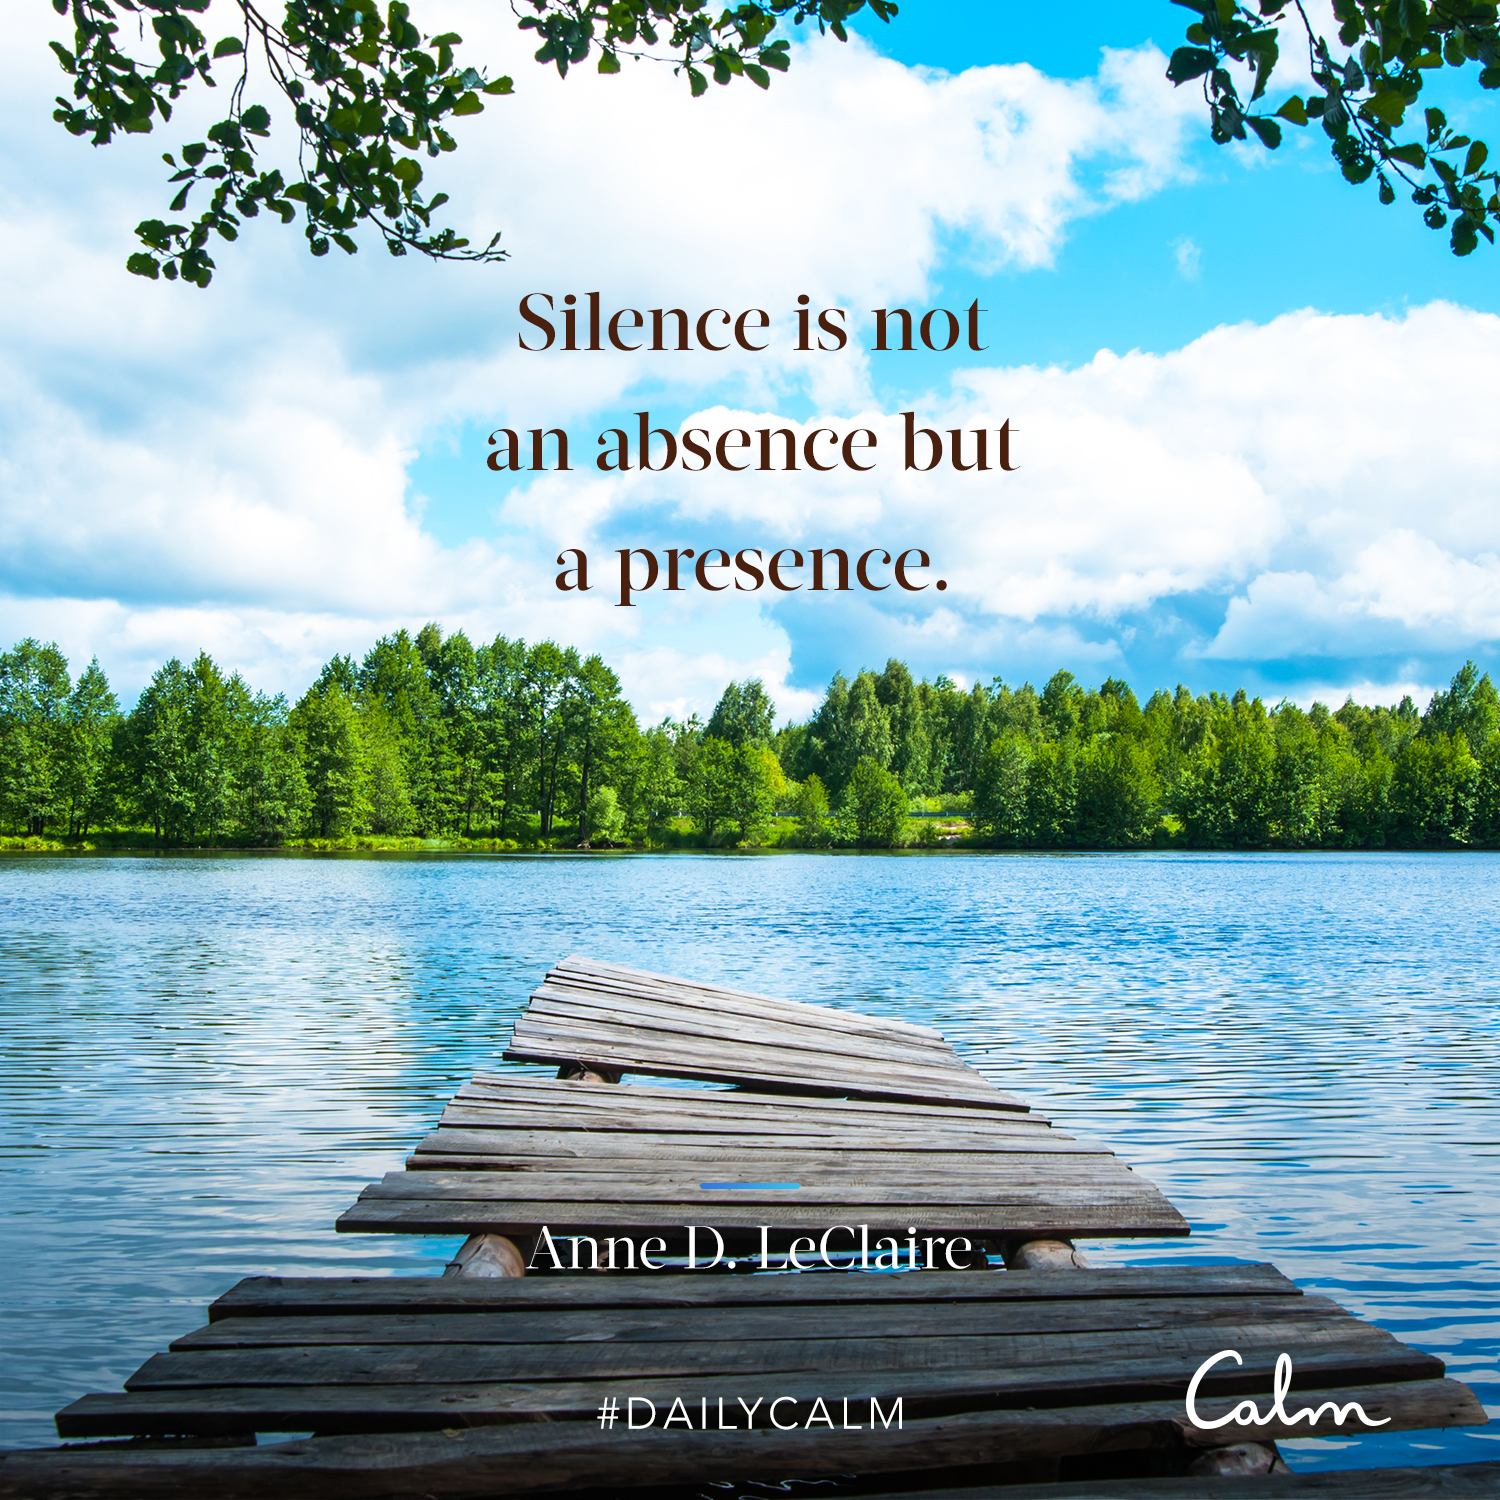 Daily Calm Quotes Silence Is Not An Absence But A Presence Anne D Leclaire Peaceful Place Quotes Daily Calm Calm Quotes